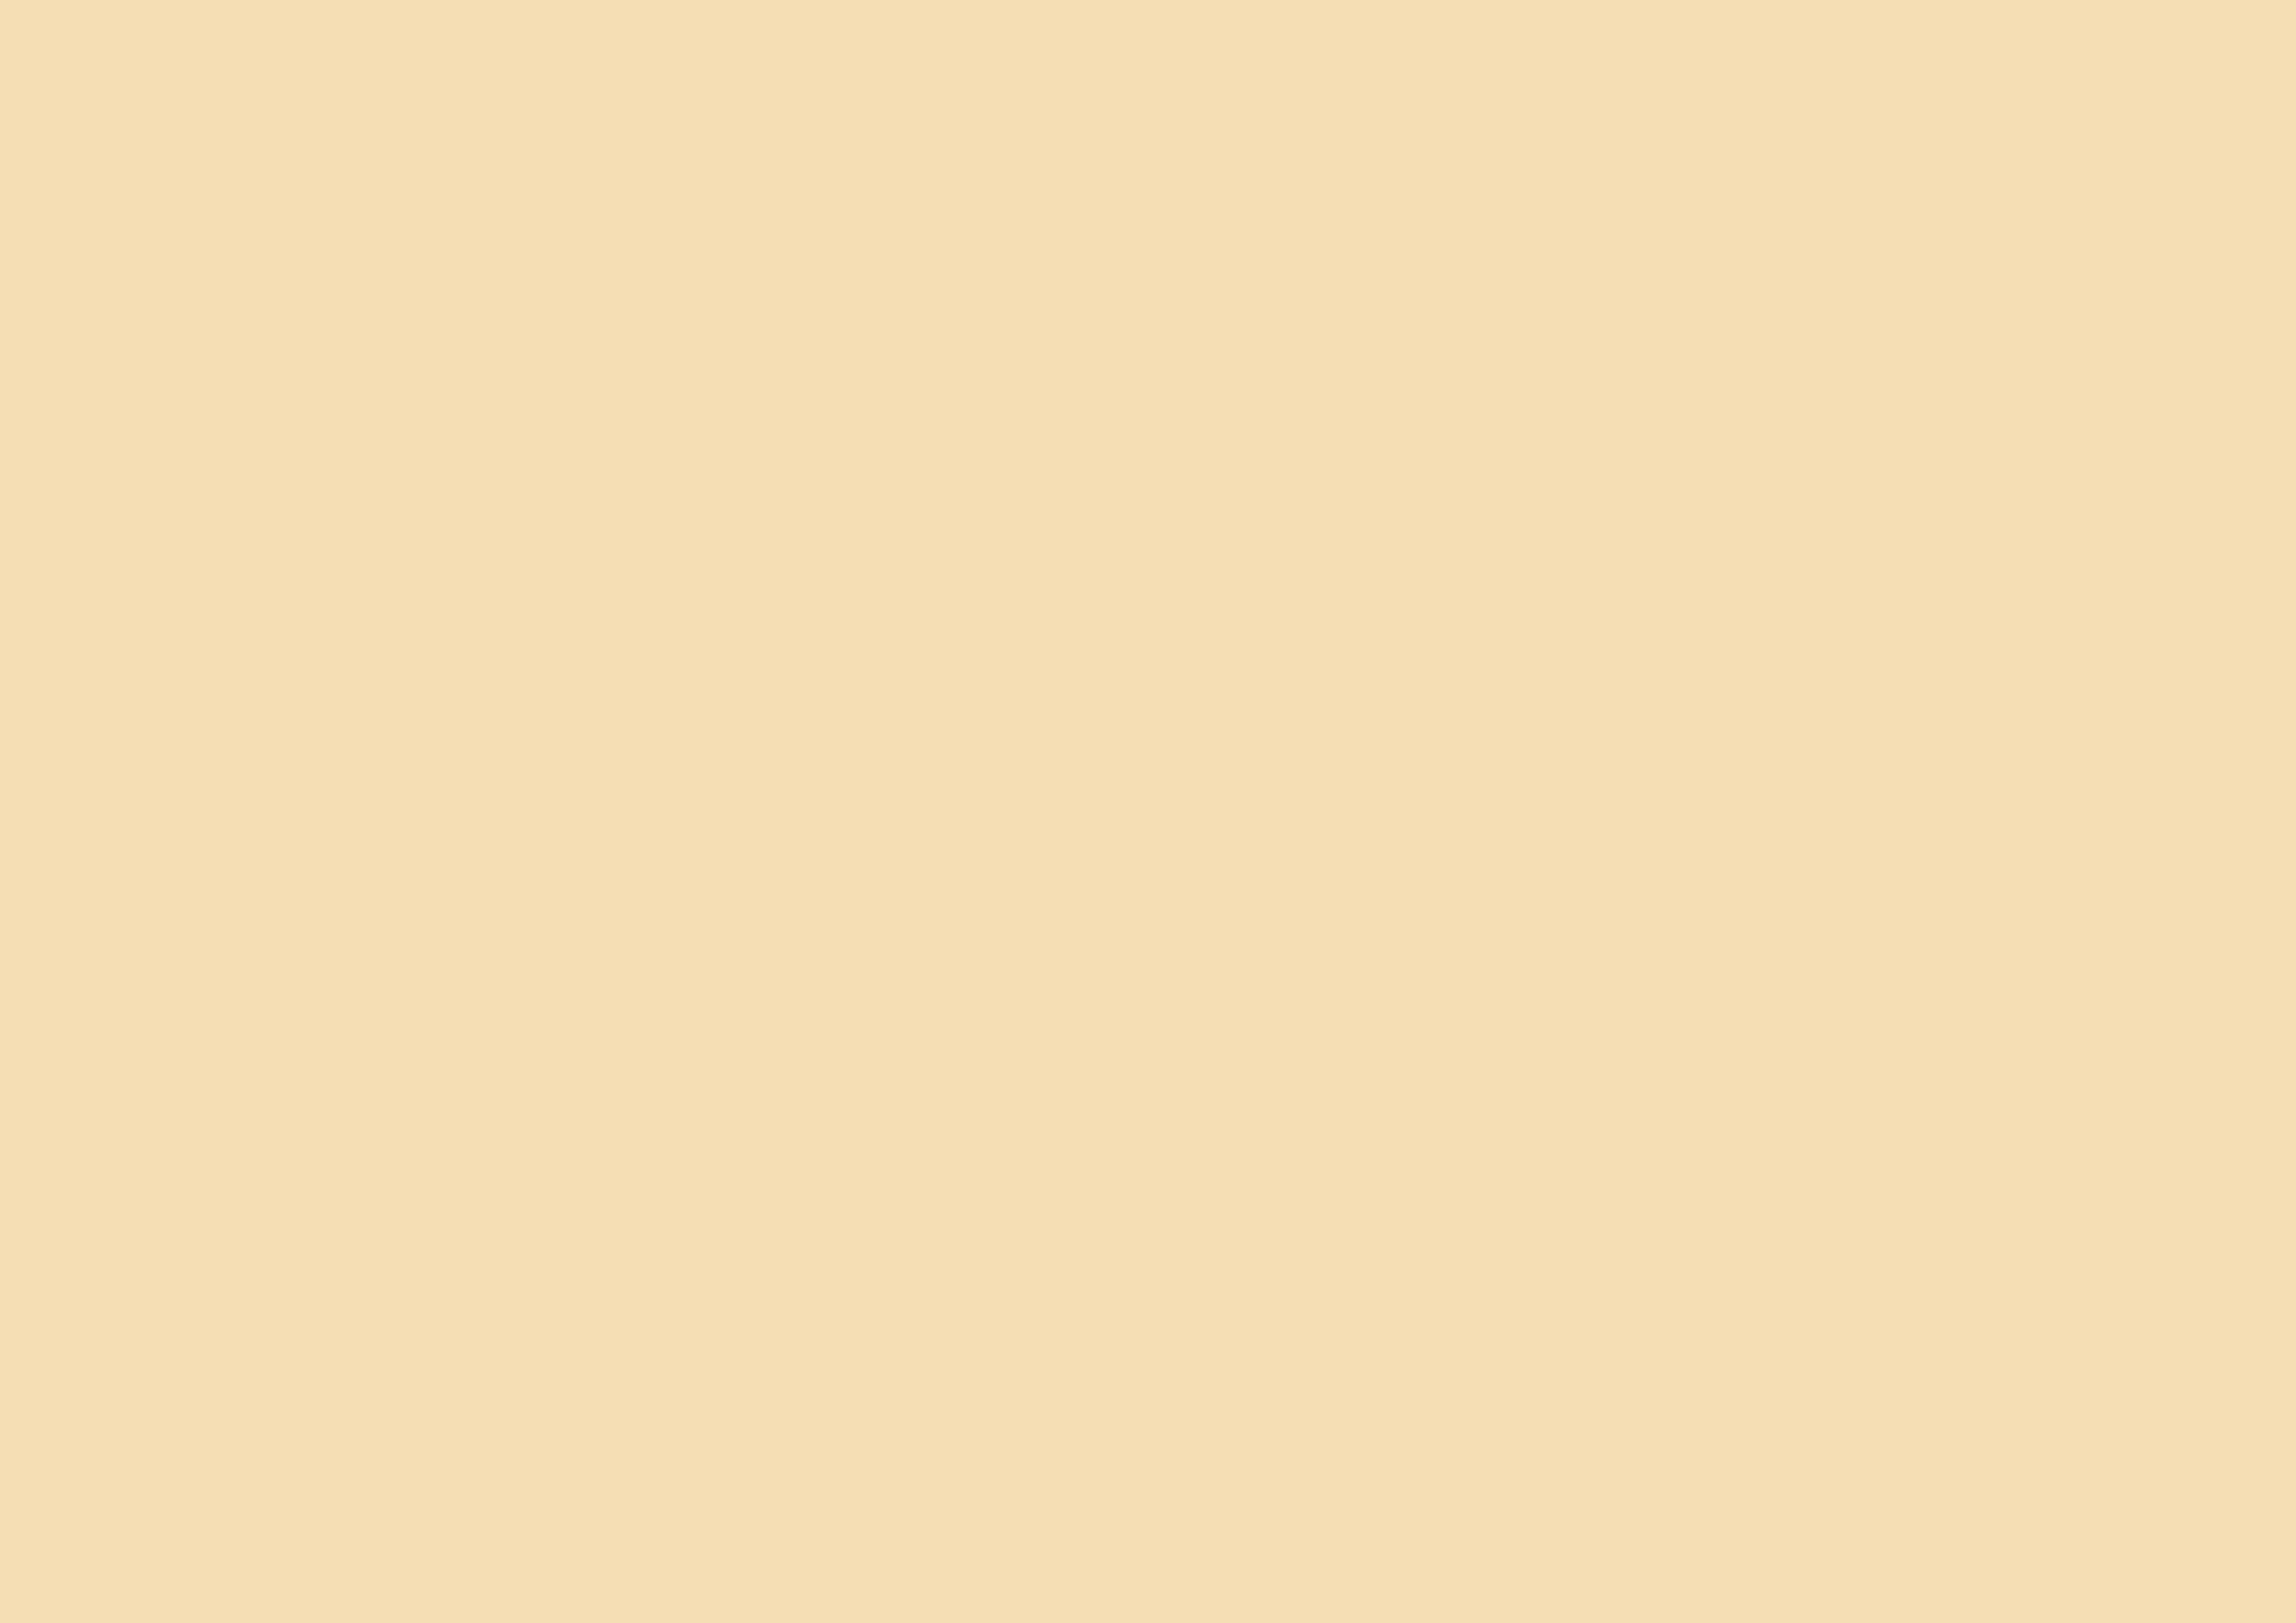 3508x2480 Wheat Solid Color Background